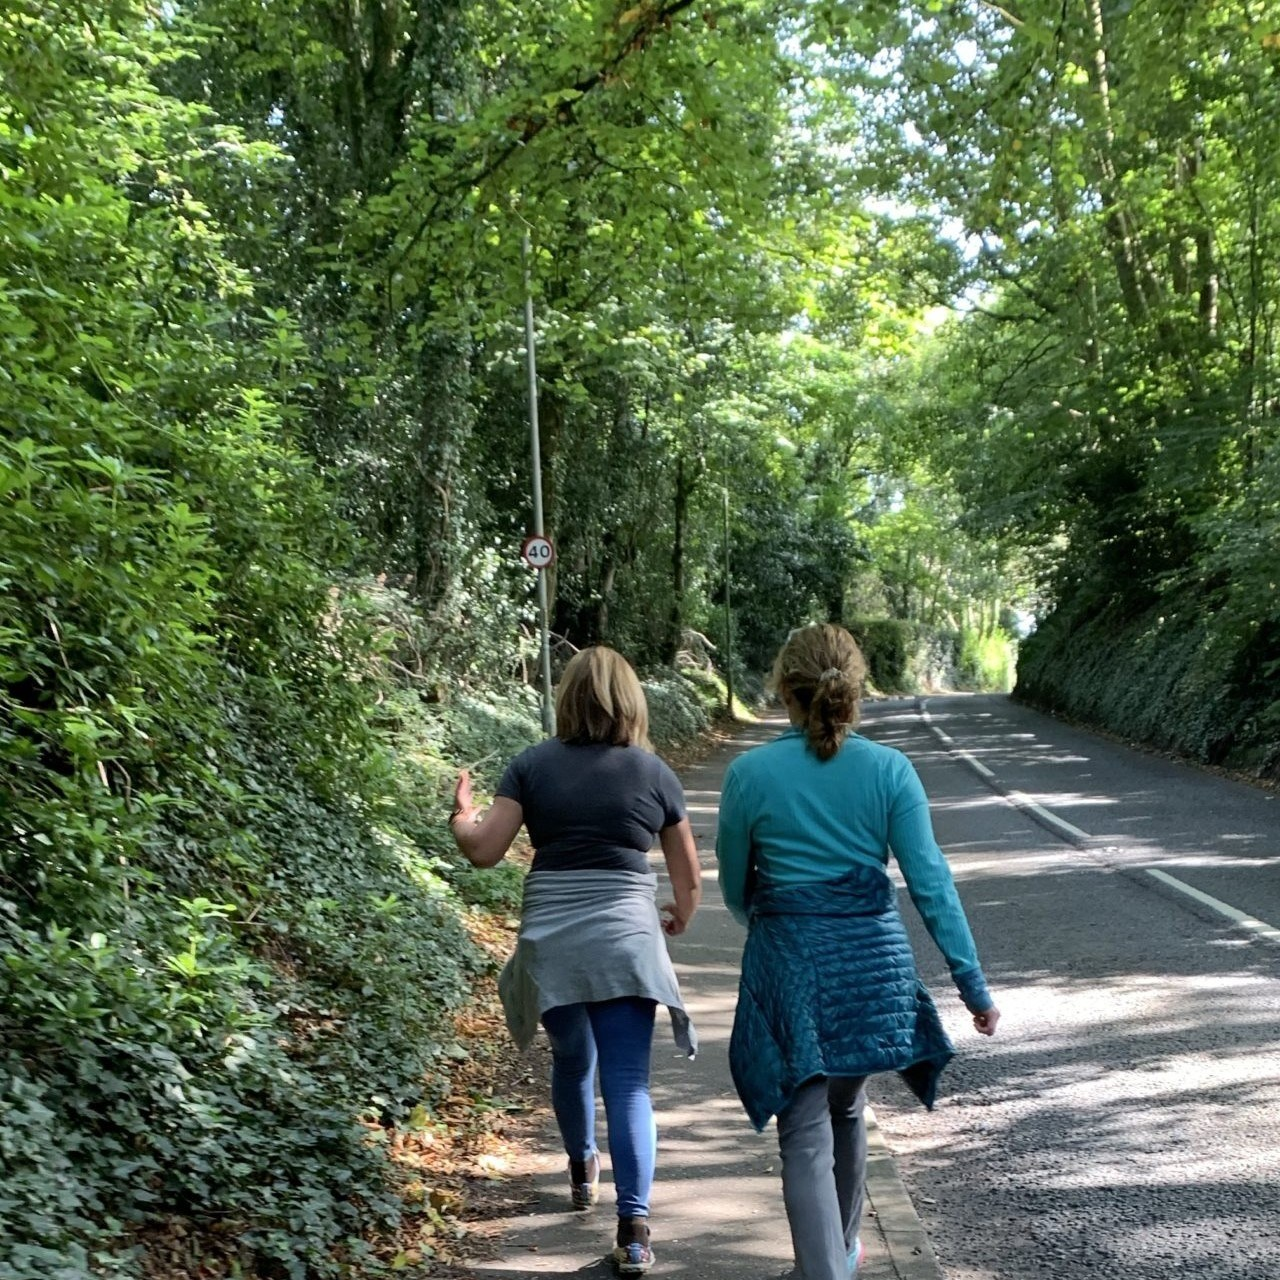 Ladies walking along a tree-lined path